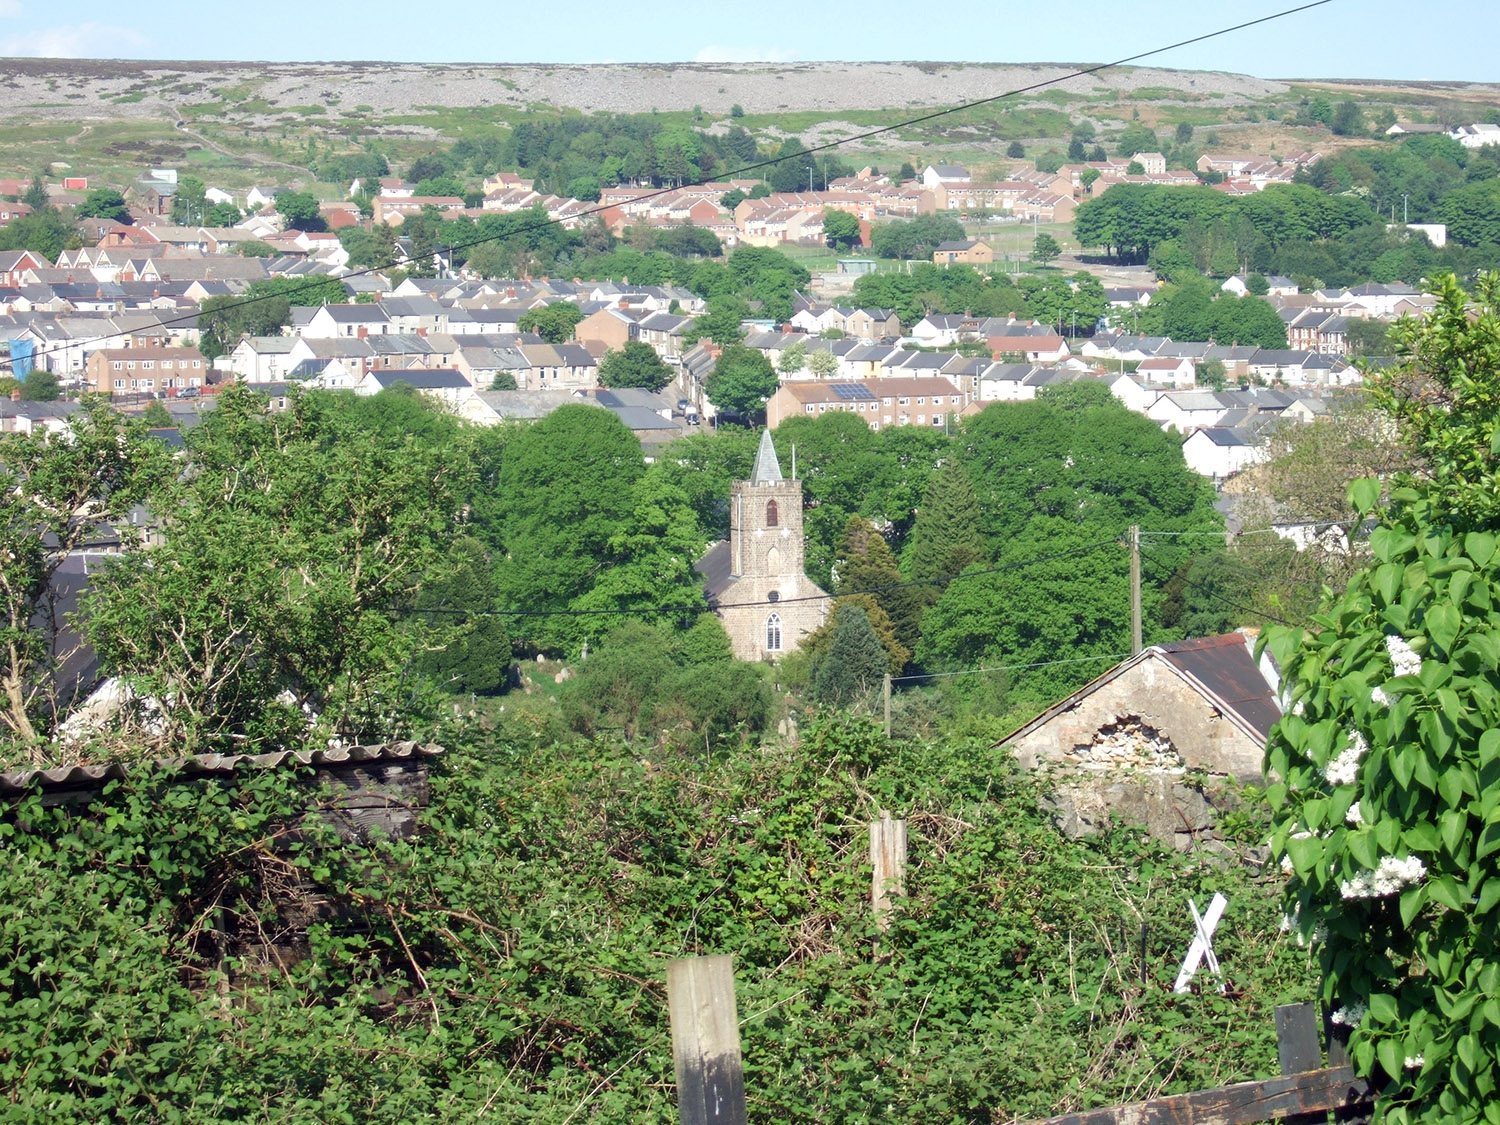 Consider green space both within and outside the town